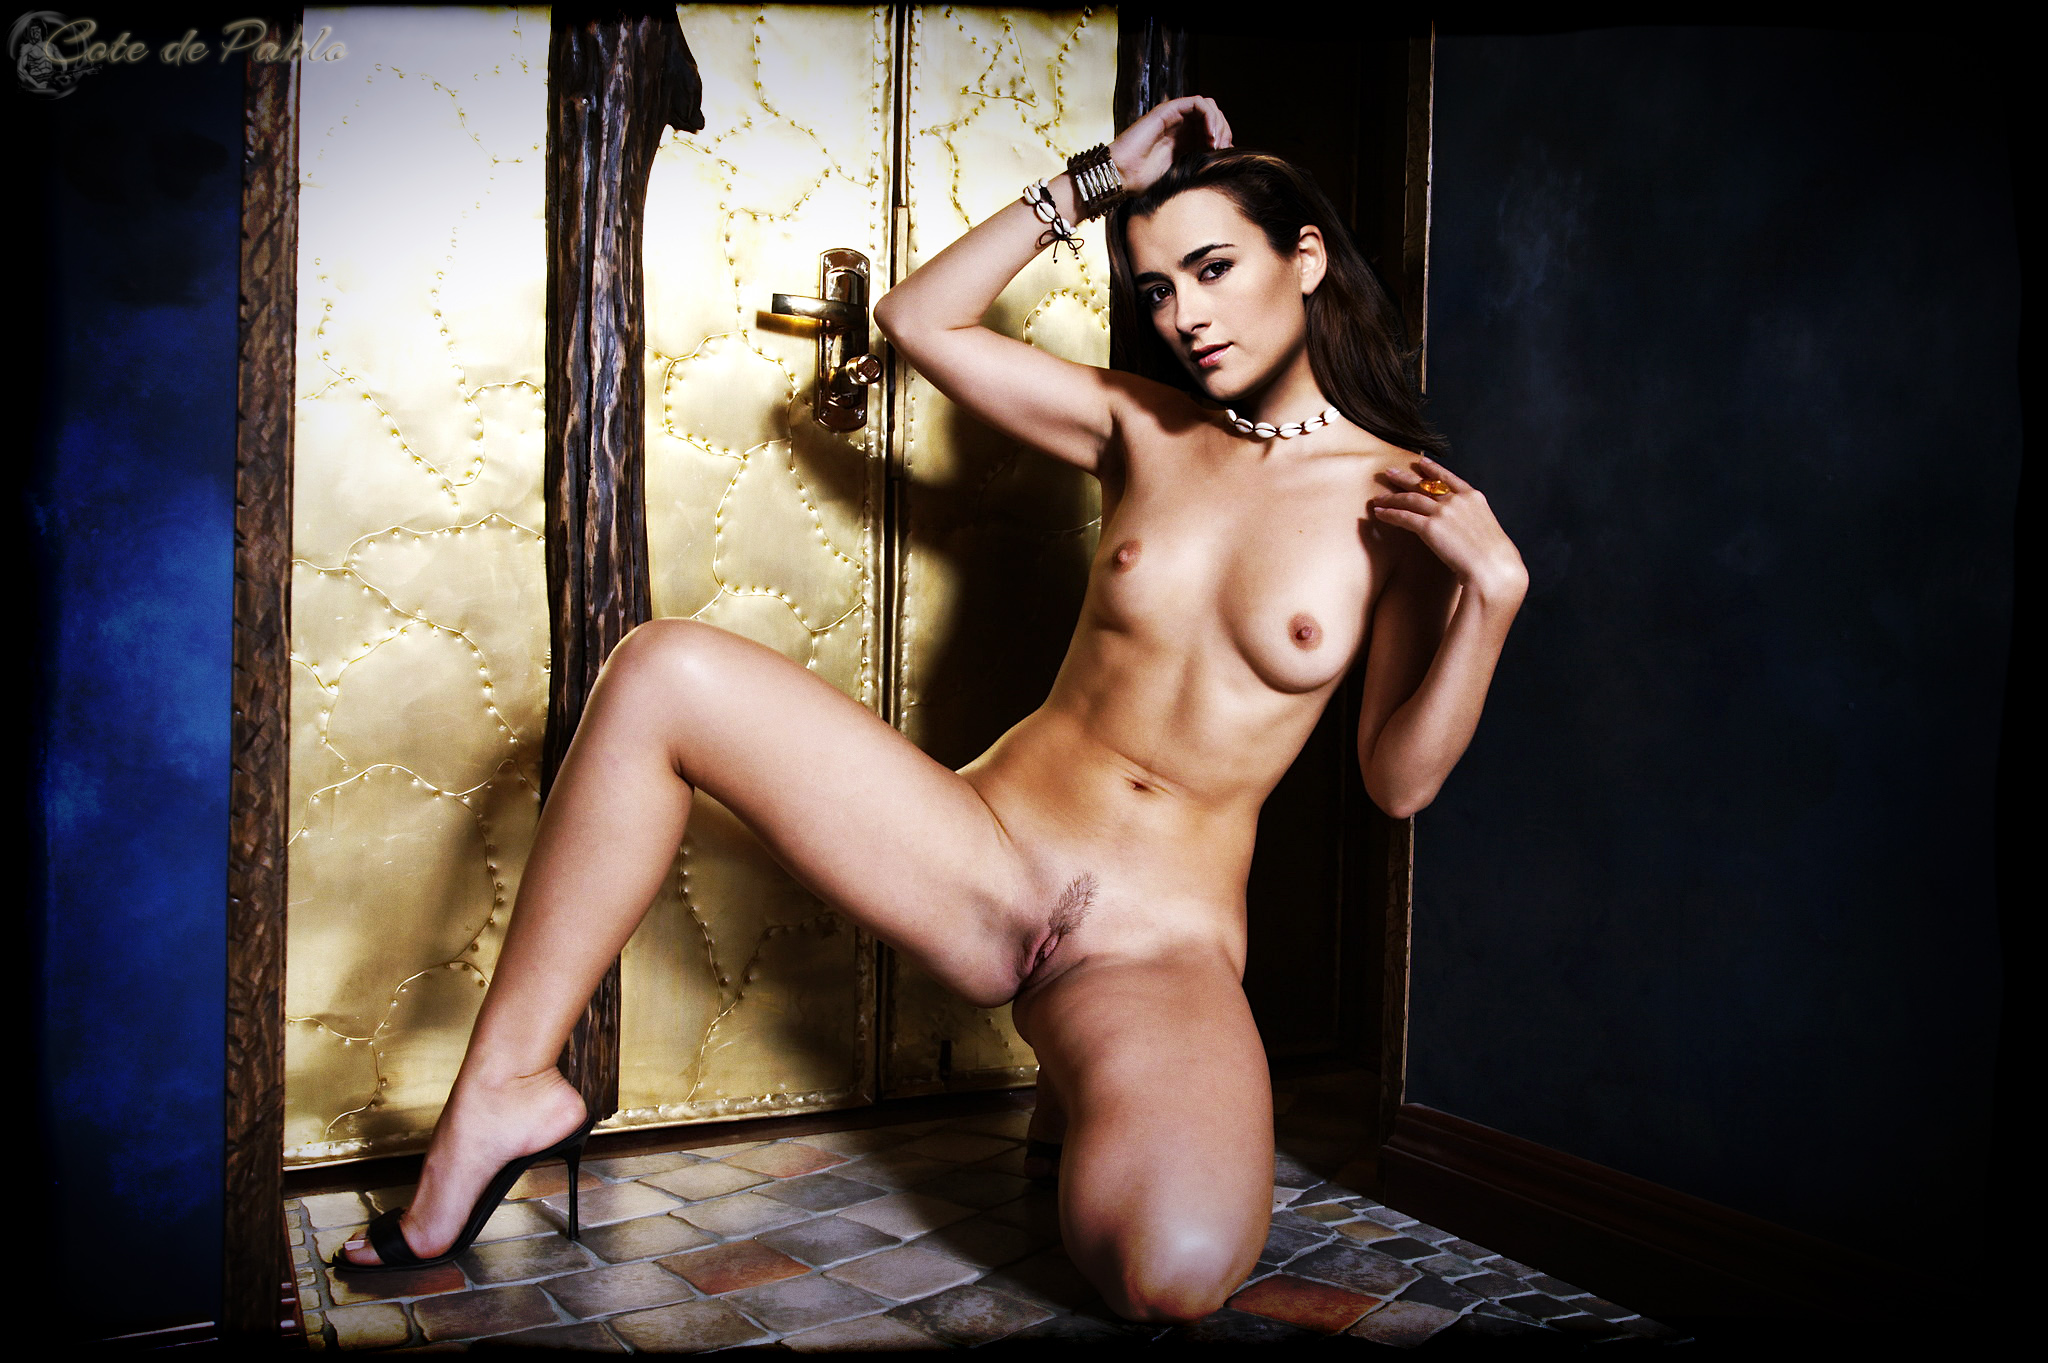 Cote de pablo fake naked photos